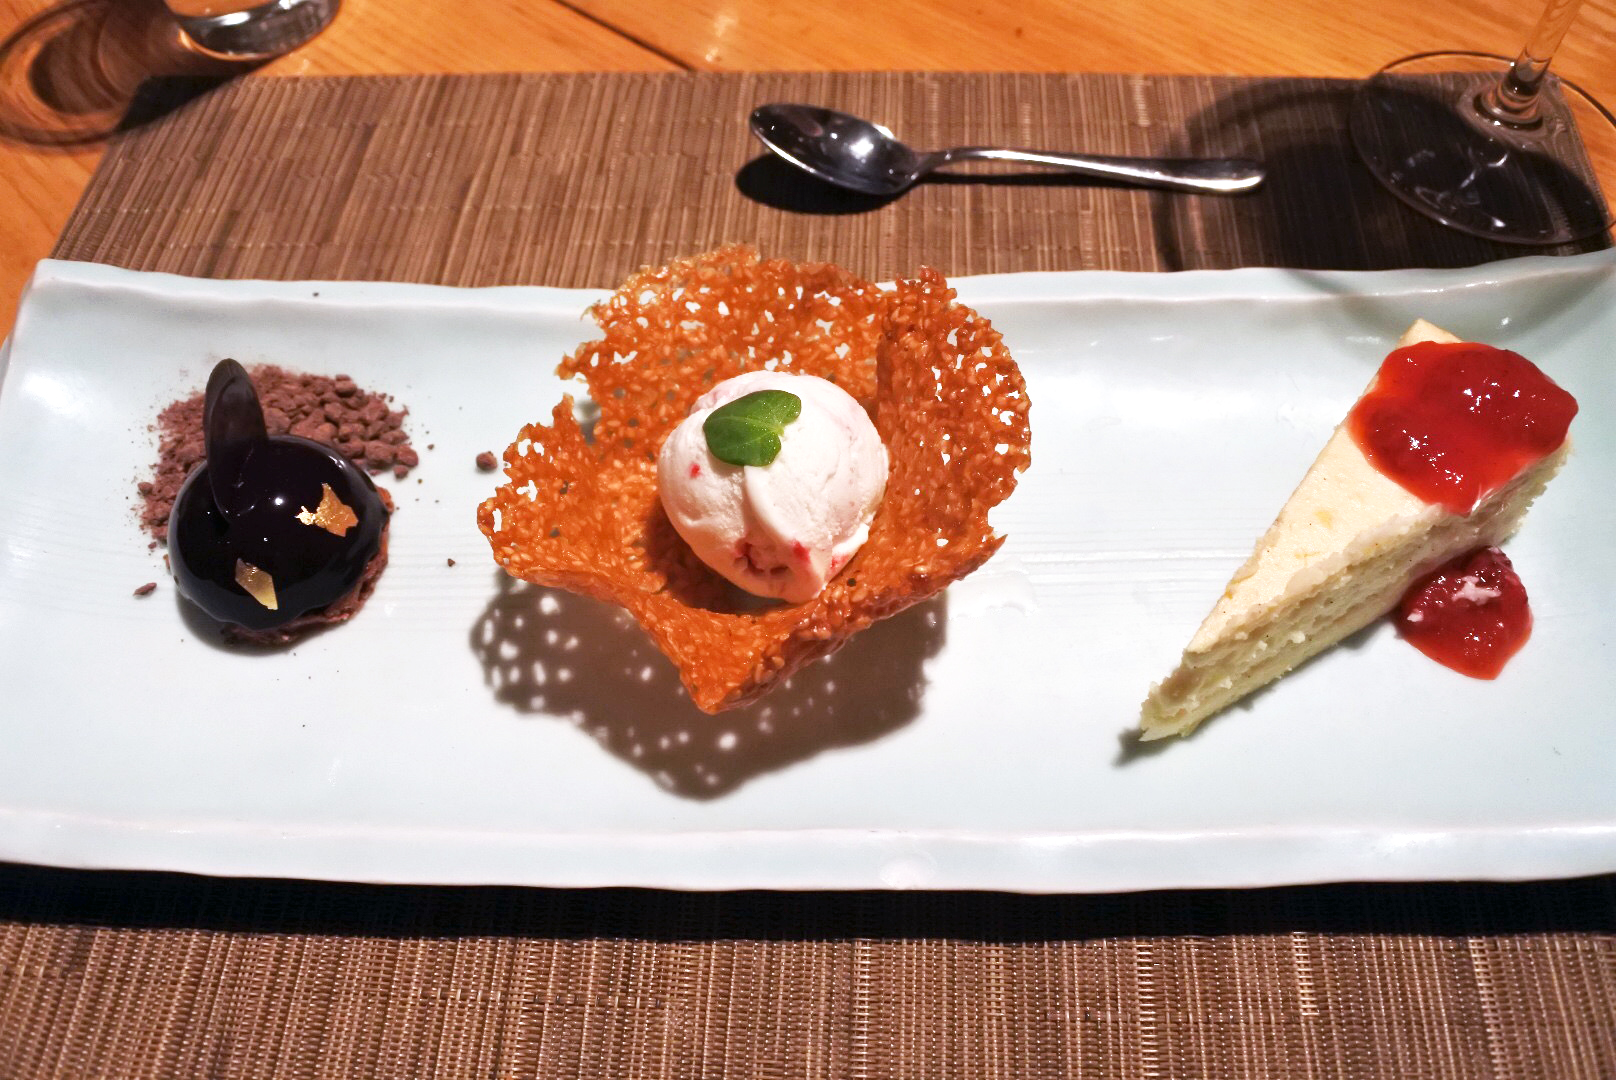 Cheesecake, ice cream, and mousse for dessert